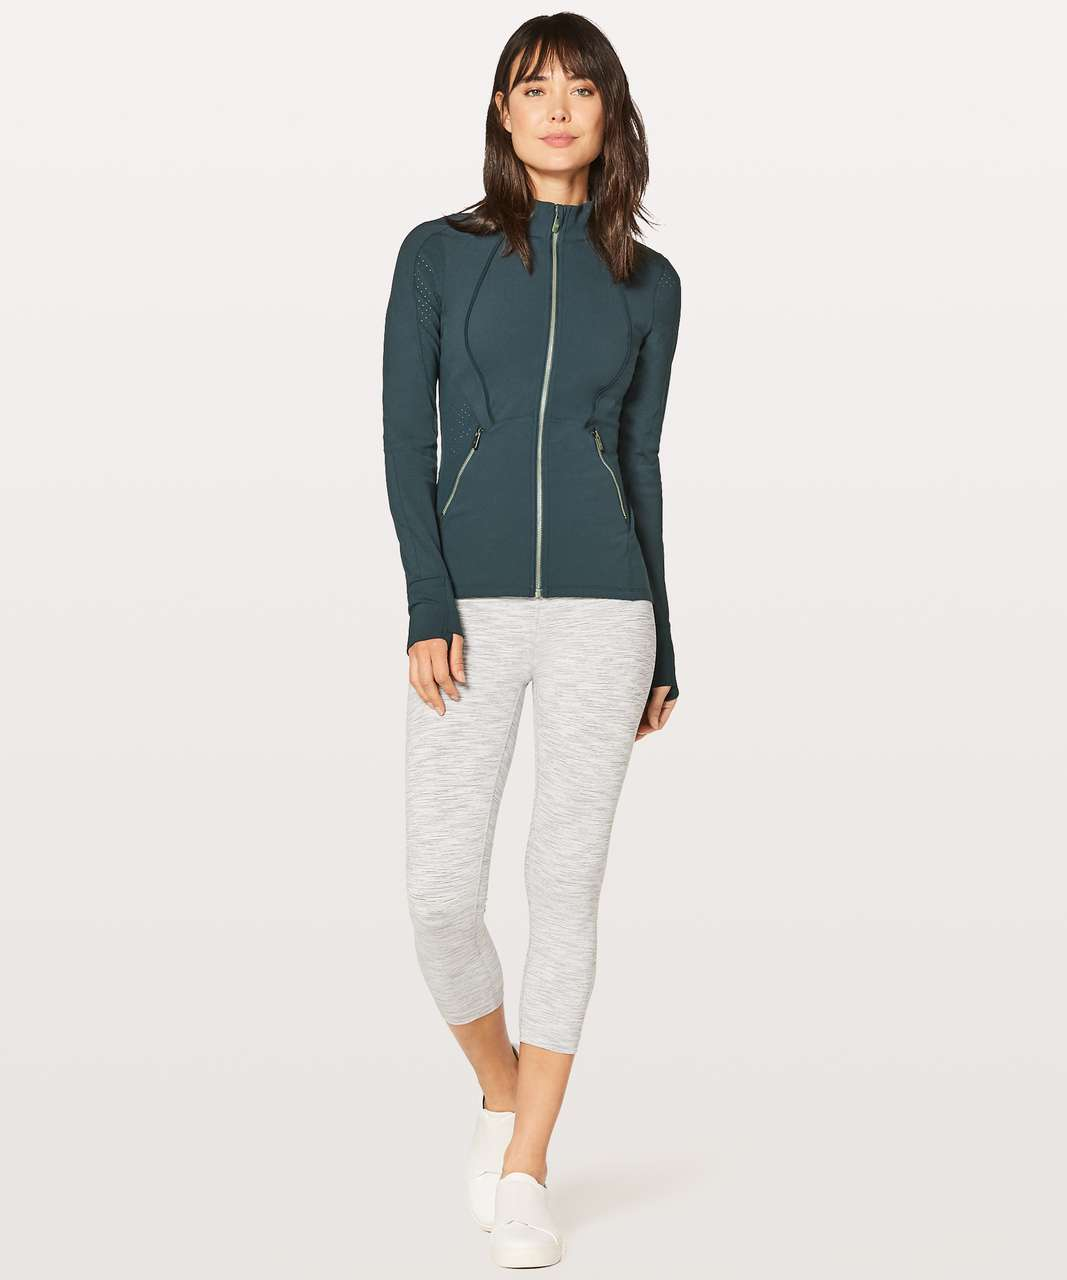 Lululemon Sleek Essentials Jacket - Nocturnal Teal